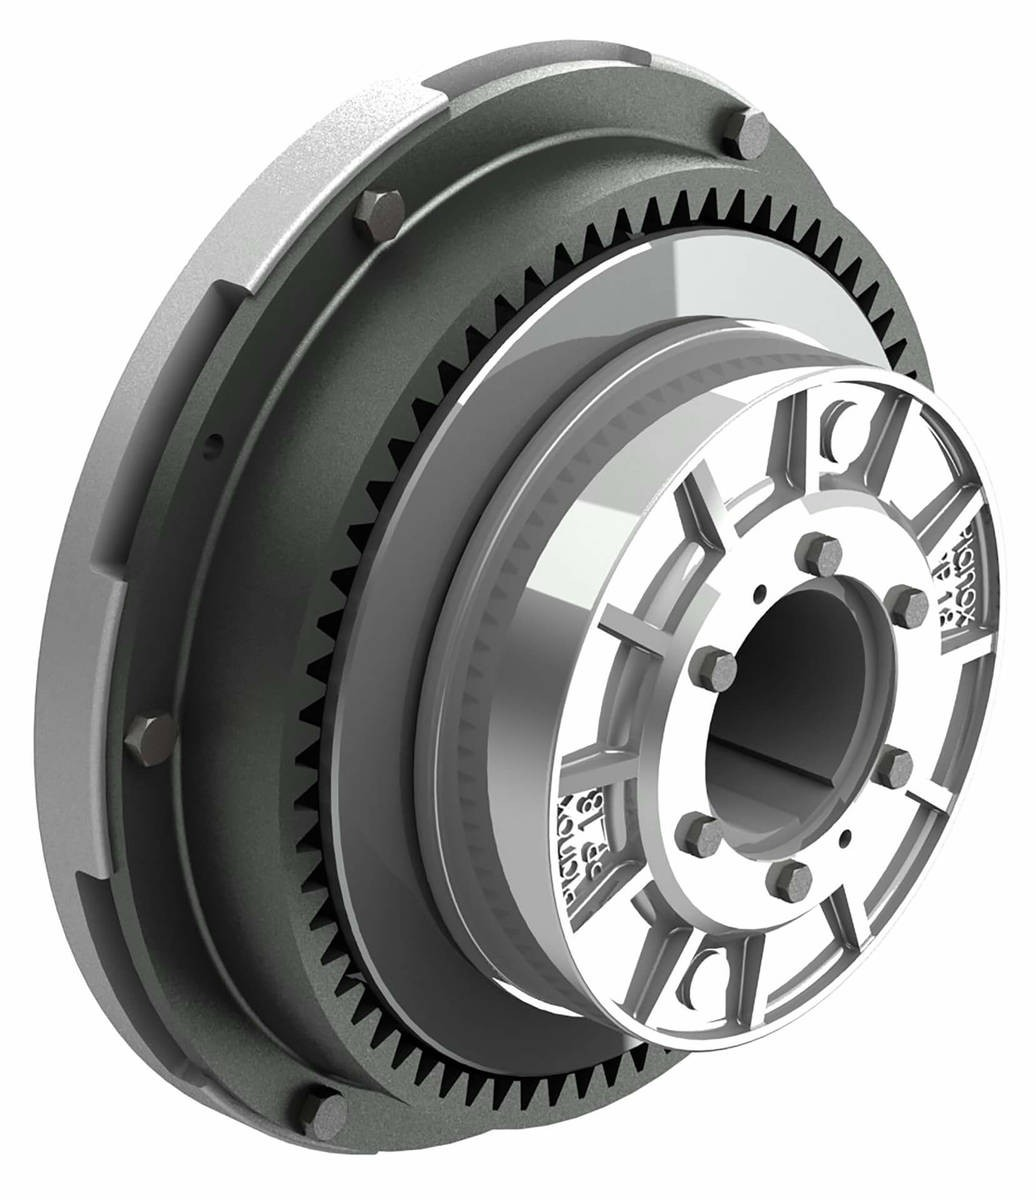 Desch Planox® PPT switched off pneumatically  Multi Plate Friction Clutch Image